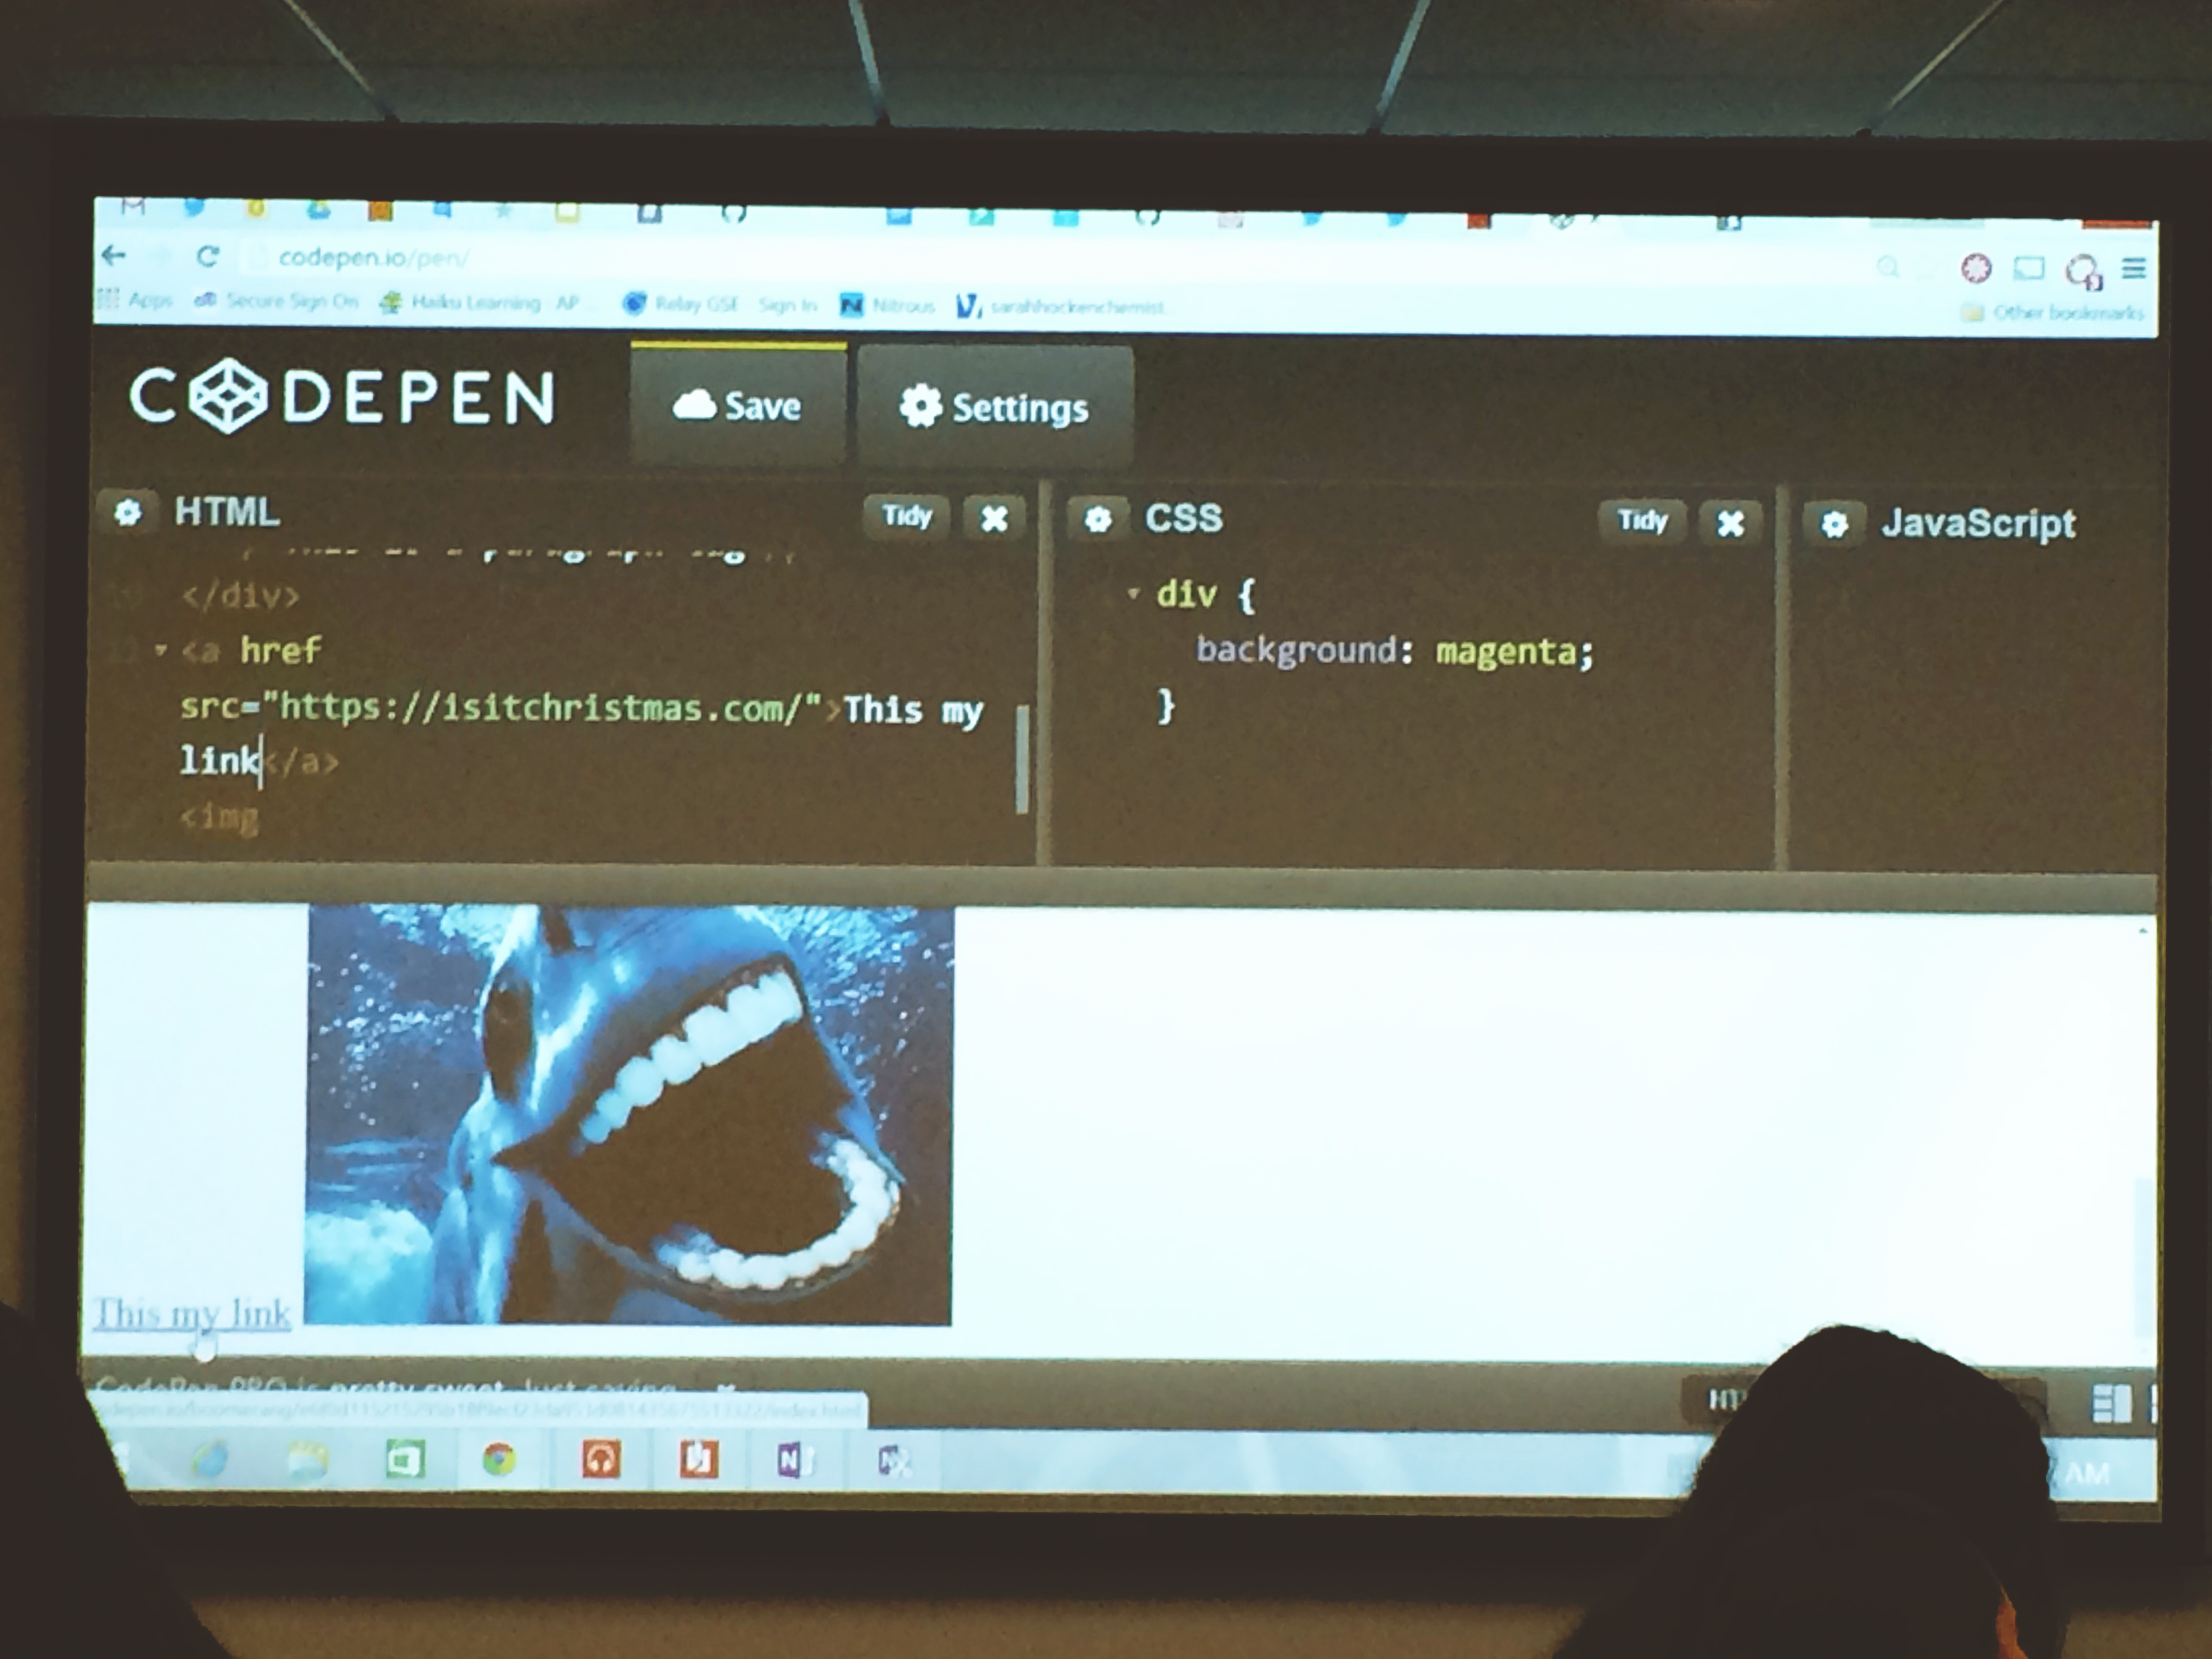 Codepen used to introduce html and css